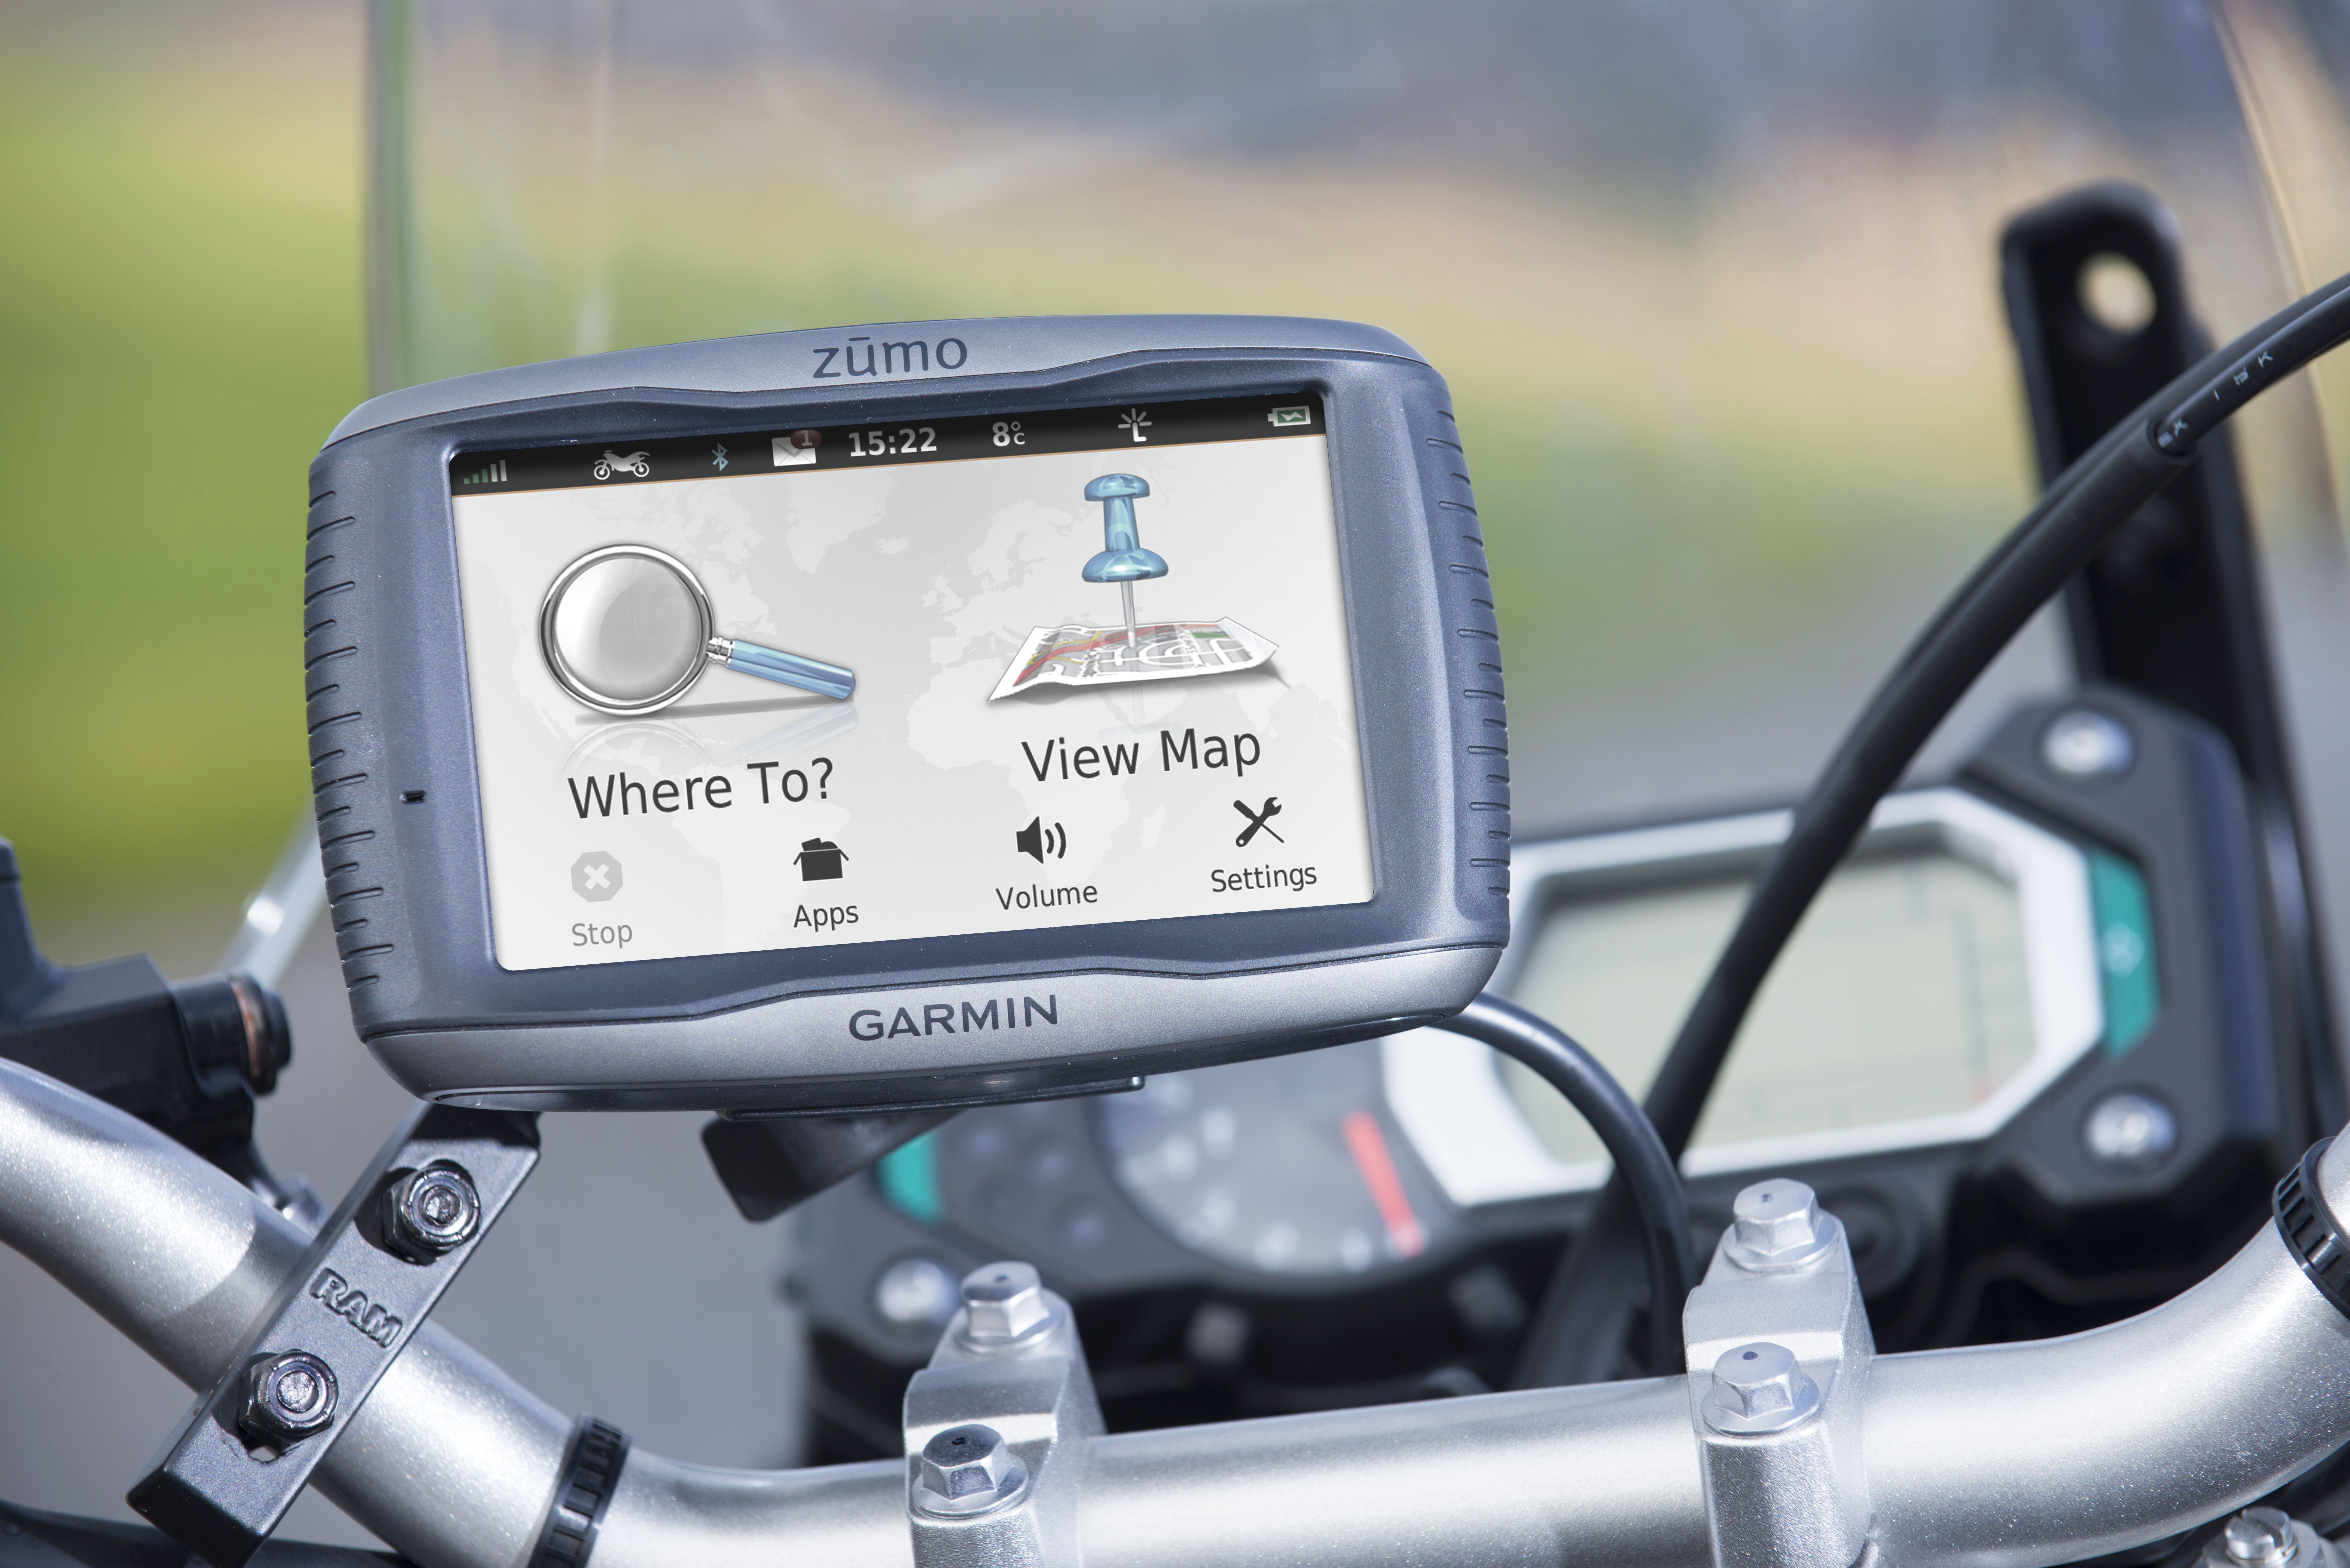 Best Free Sat Nav For Iphone Garmin Zumo 595lm Motorcycle Gps Satnav Free Uk Europe